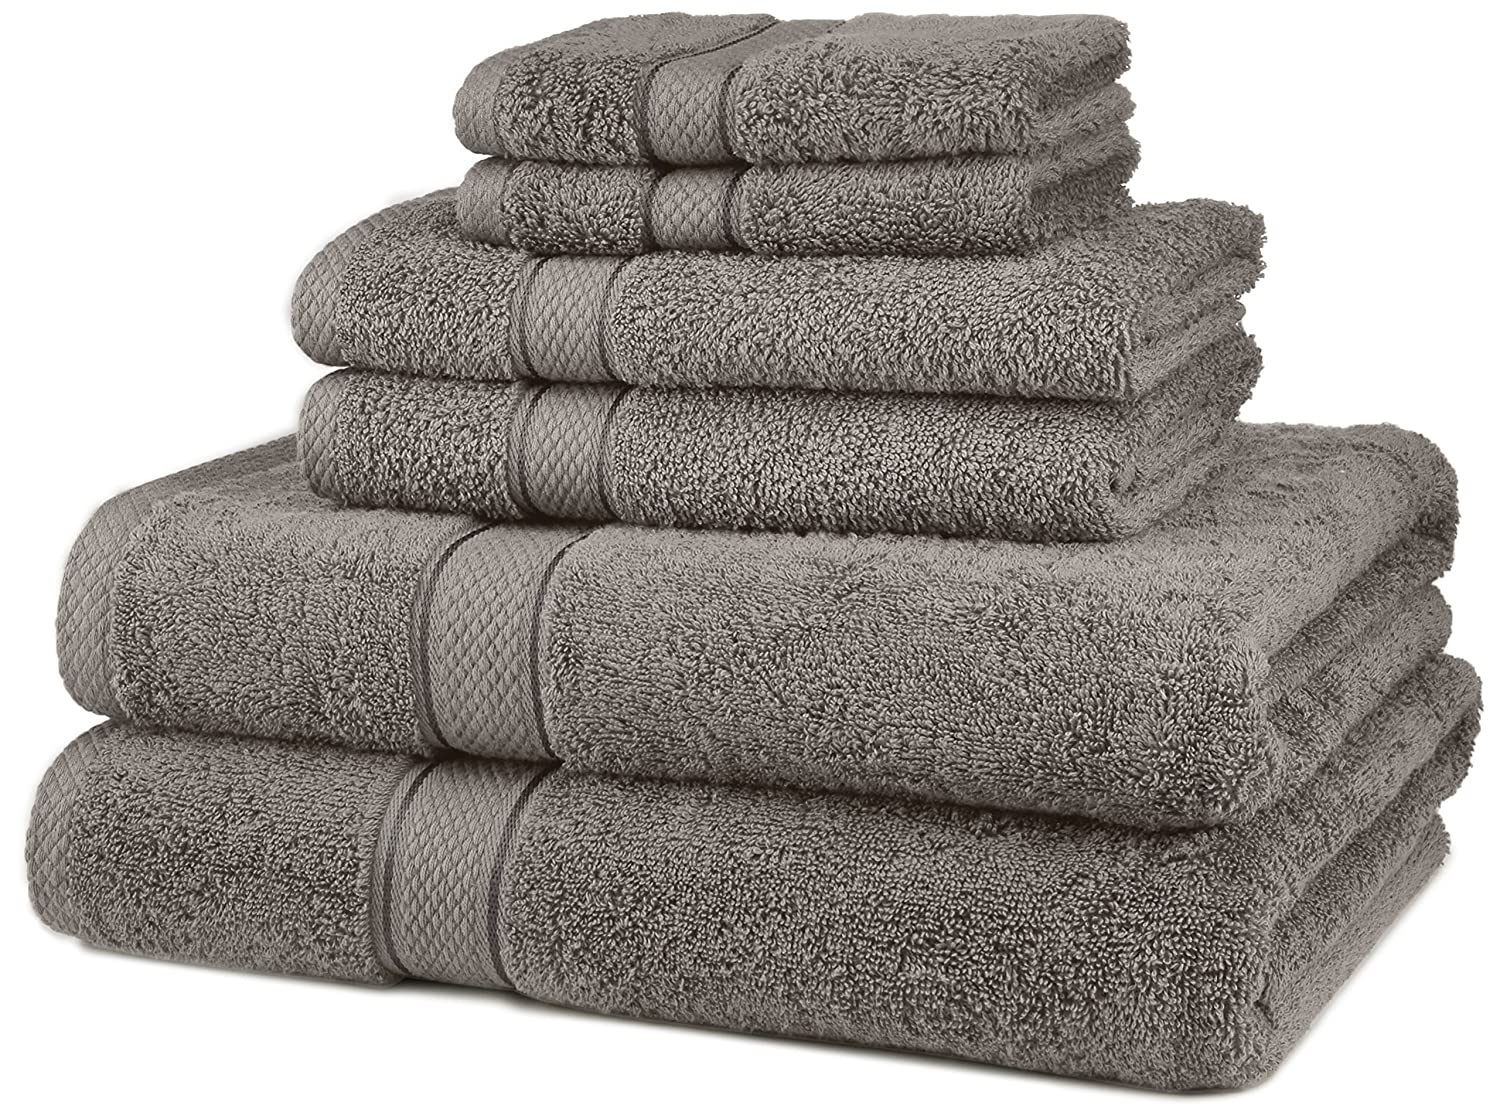 Amazon com  Pinzon Blended Egyptian Cotton 6 Piece Towel Set  Grey  Home    Kitchen. Amazon com  Pinzon Blended Egyptian Cotton 6 Piece Towel Set  Grey